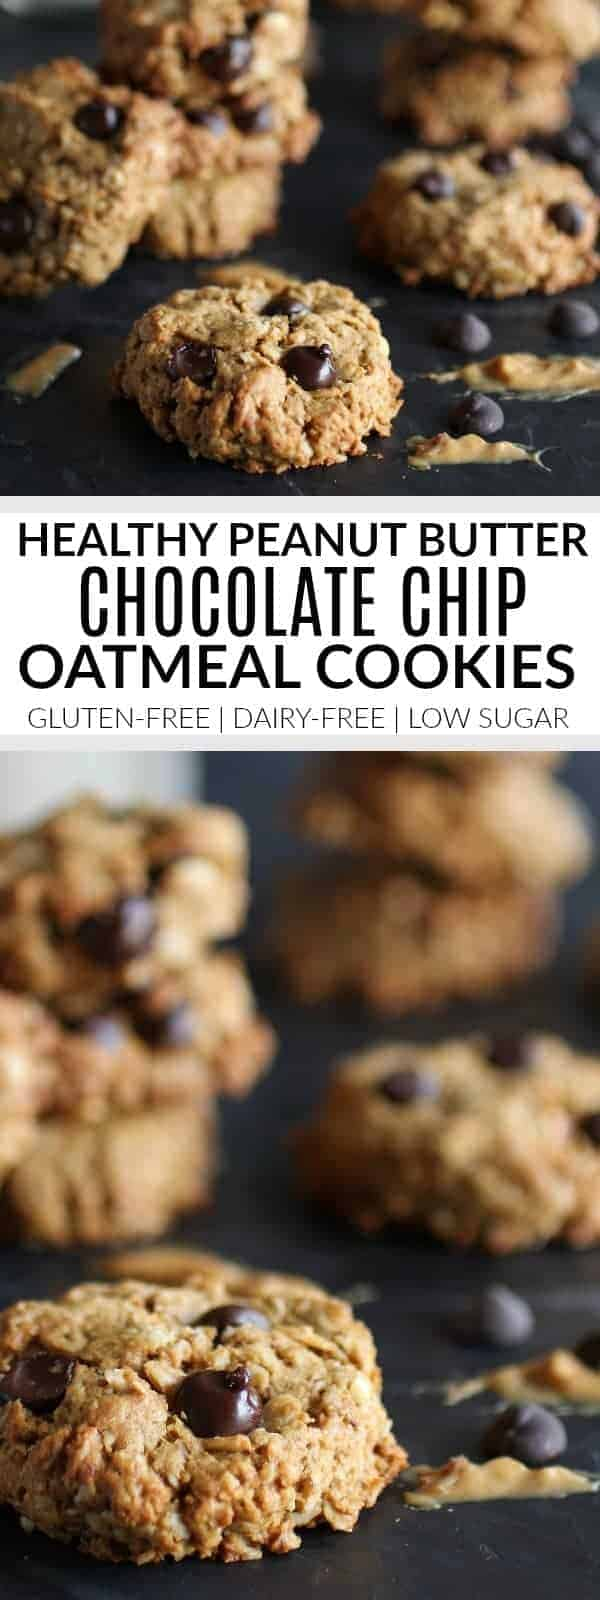 Healthy Peanut Butter Chocolate Chip Oatmeal Cookies | gluten-free cookie recipes | dairy-free cookie recipes | low sugar cookie recipes | healthy chocolate chip cookie recipes | peanut butter chocolate chip cookie recipe || The Real Food Dietitians #glutenfreecookies #dairyfreecookies #lowsugarcookies